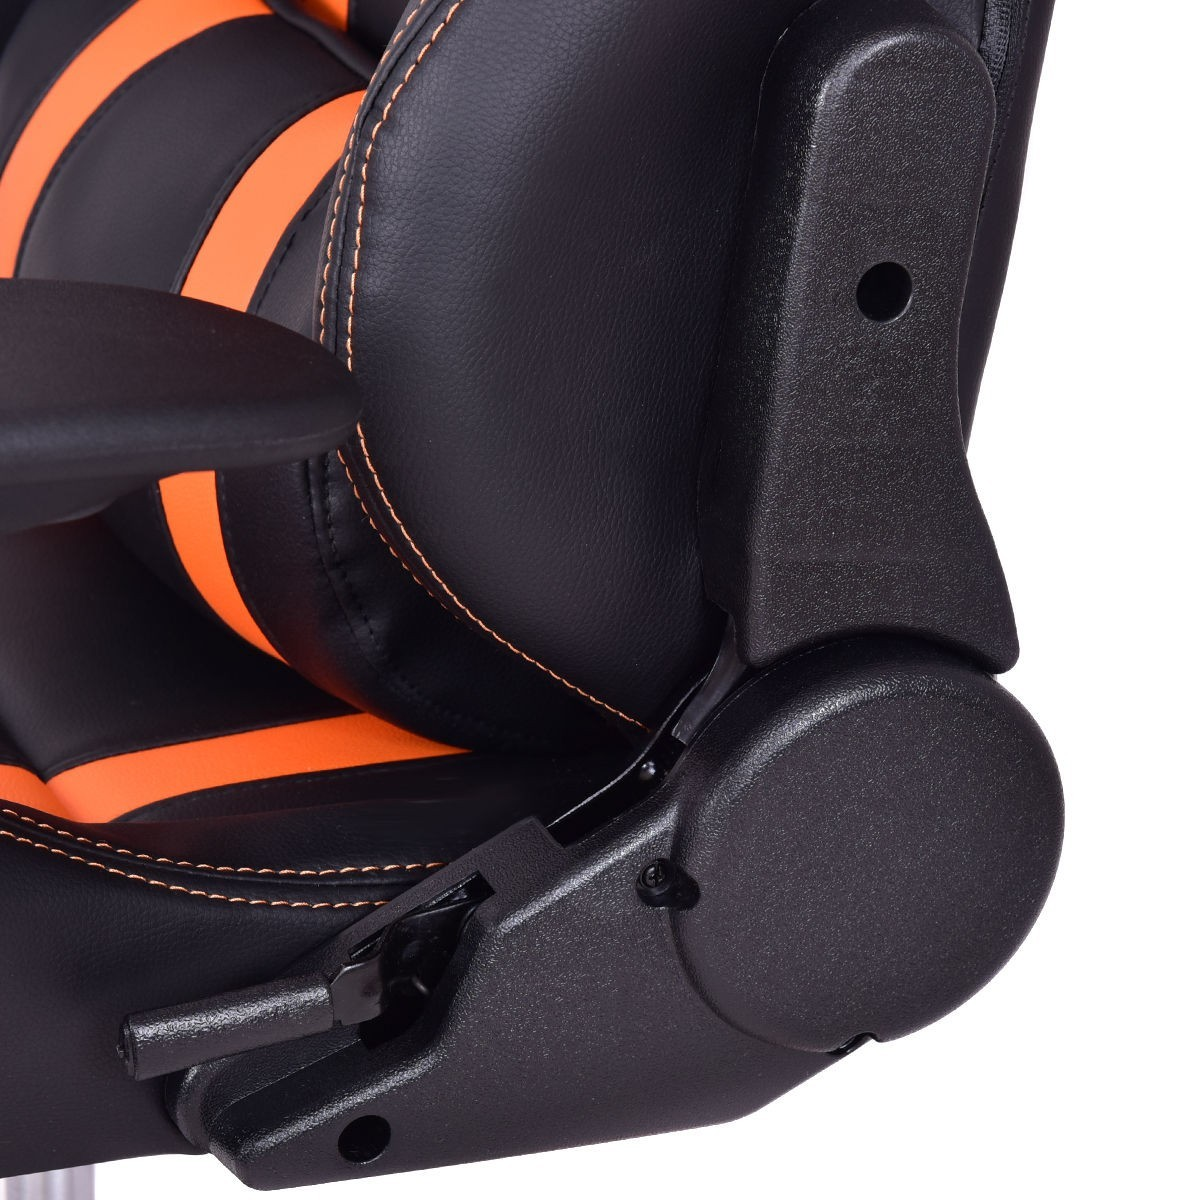 High-Back Reclining Racing Gaming Chair with Head-Rest Pillow - Green